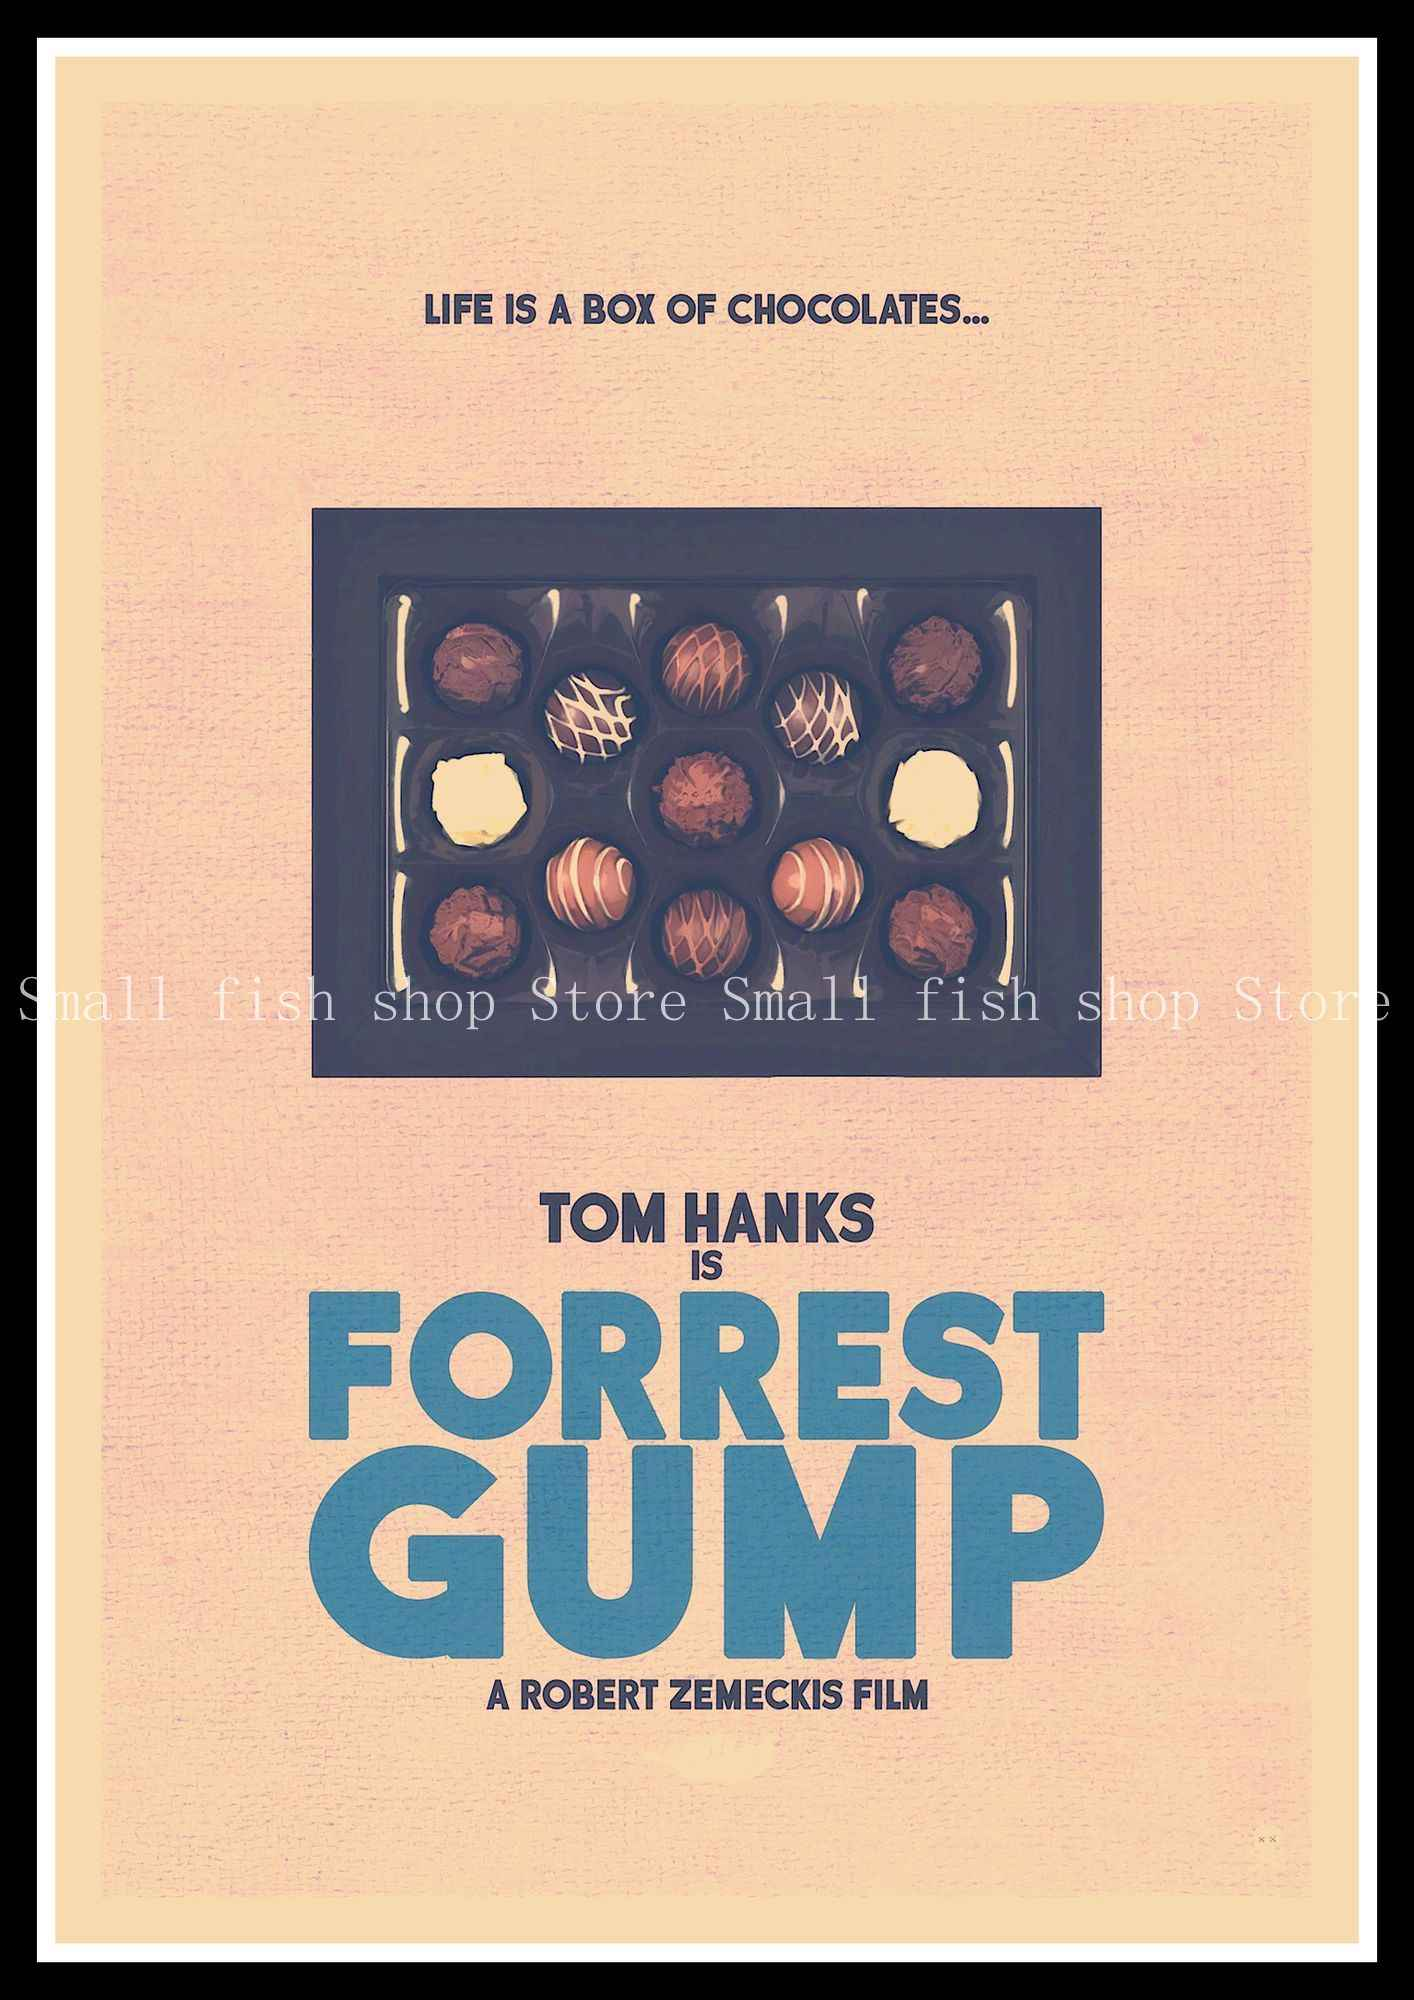 ef00583b2e8a13 ... Forrest Gump Vintage Retro Decorative Frame Poster Wall Posters Home  Decor Gift 42 30 cm